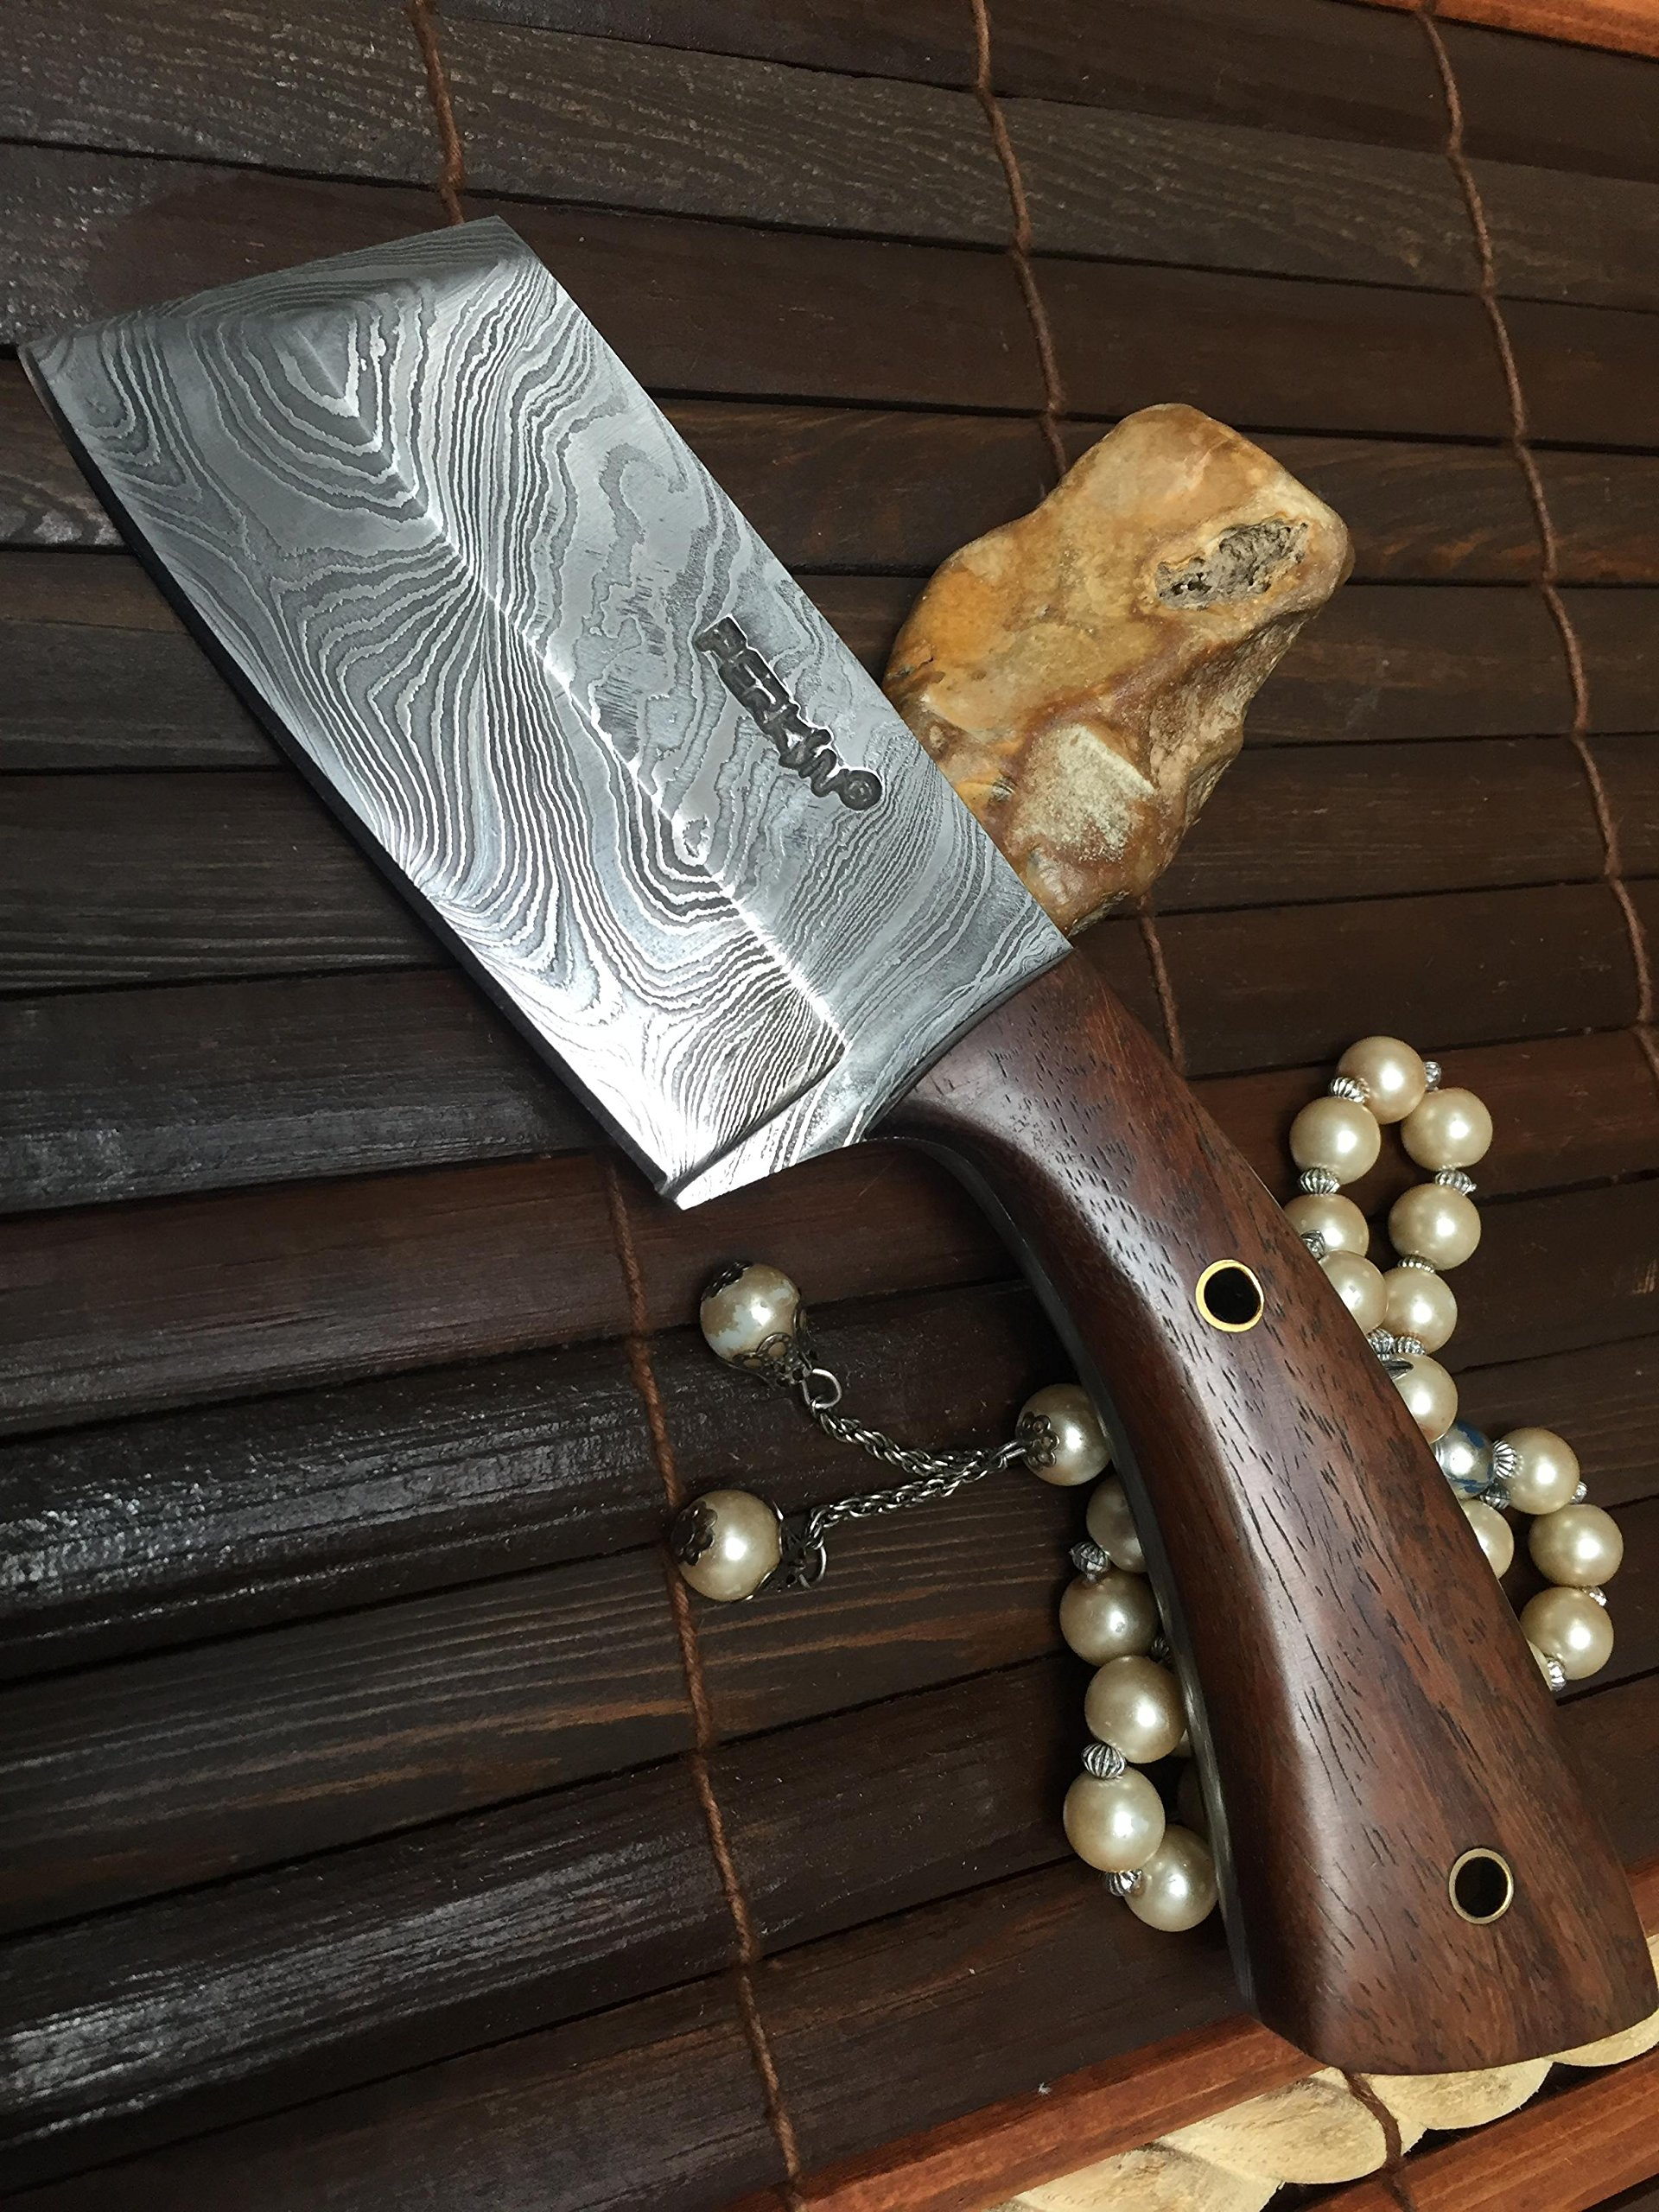 Damascus Steel Hunting Knife Damascus Chef Knife with Sheath